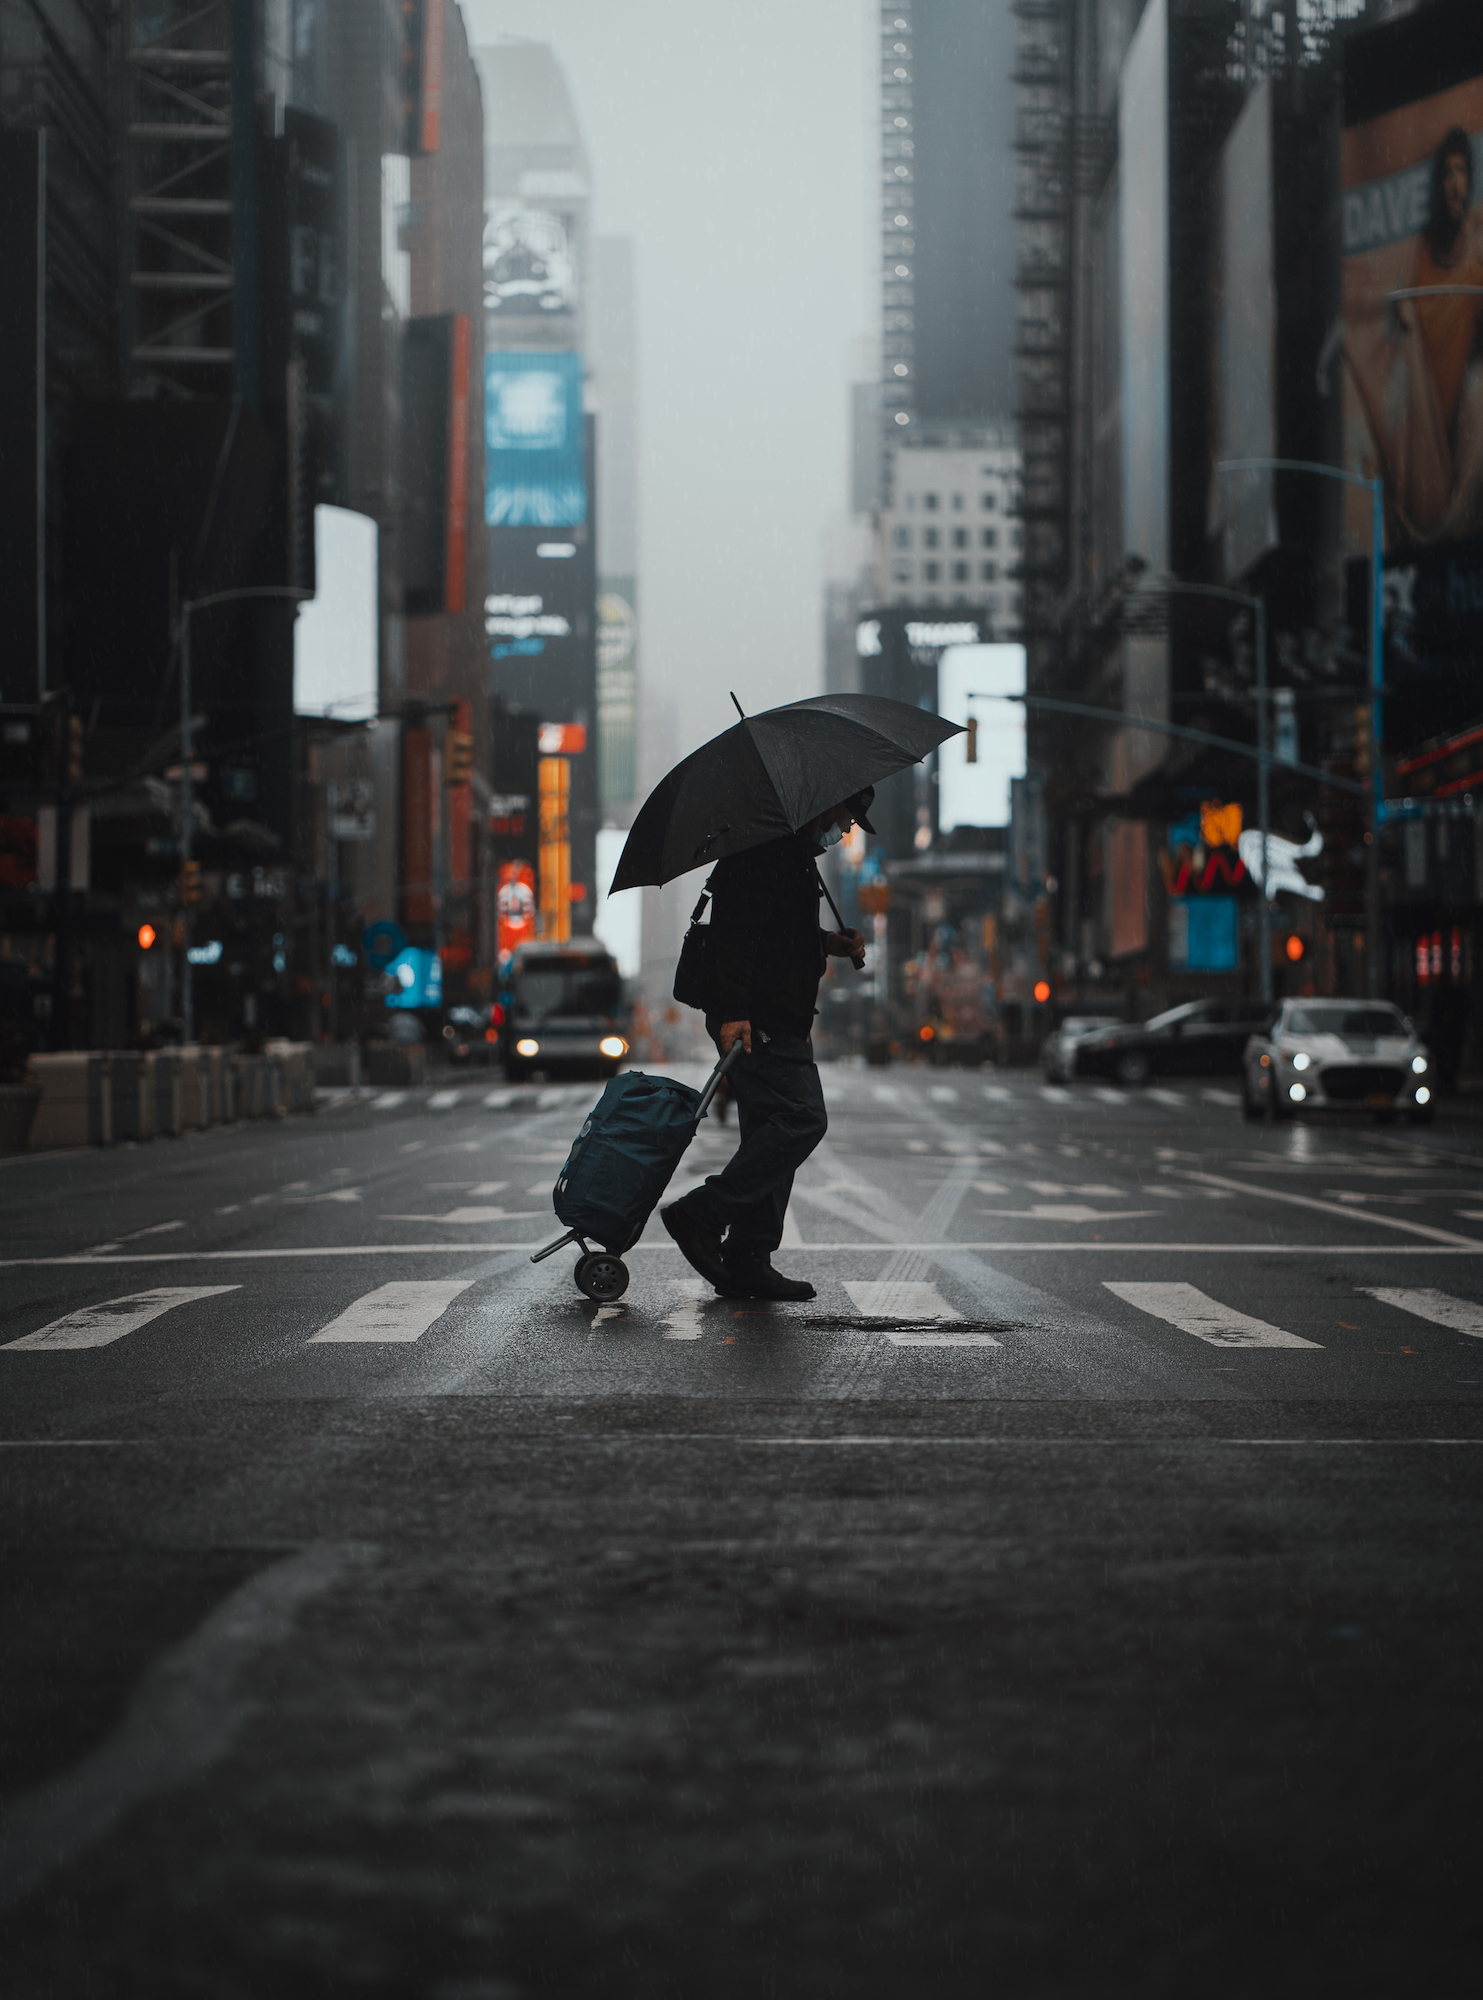 Person with umbrella walking across the street during lockdown in New York